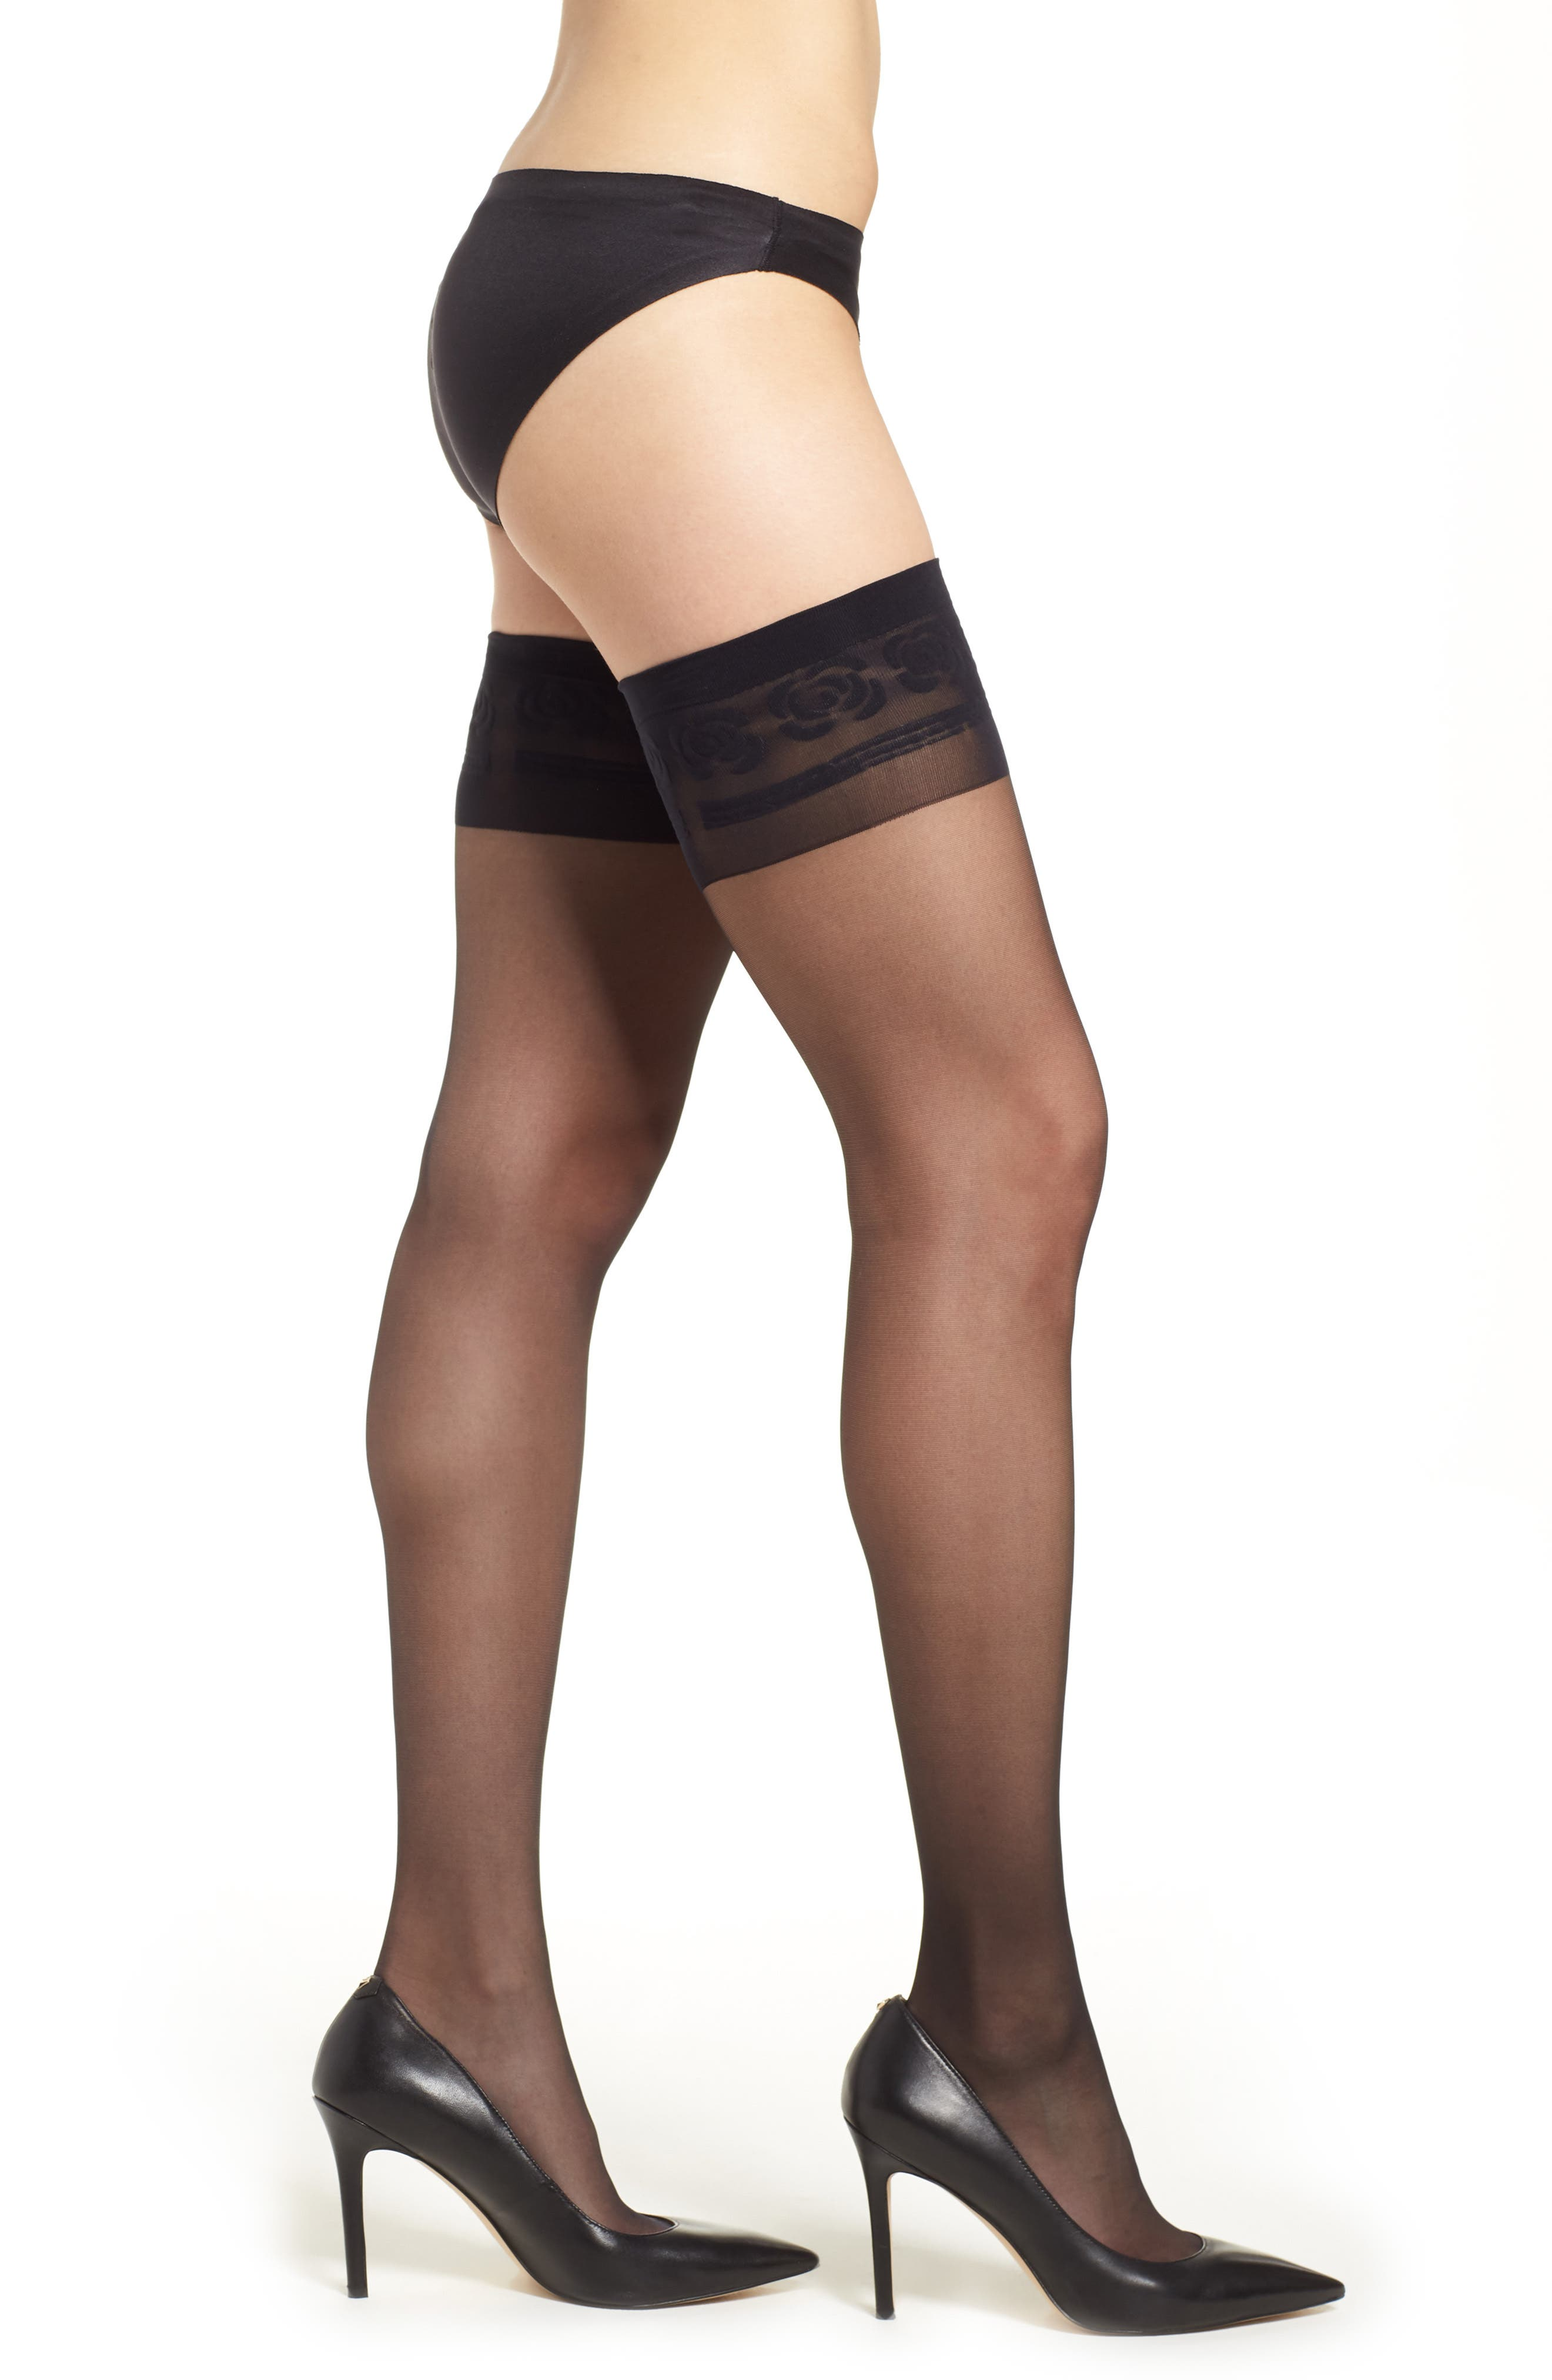 Oroblu Component Sheer Stay-Up Stockings